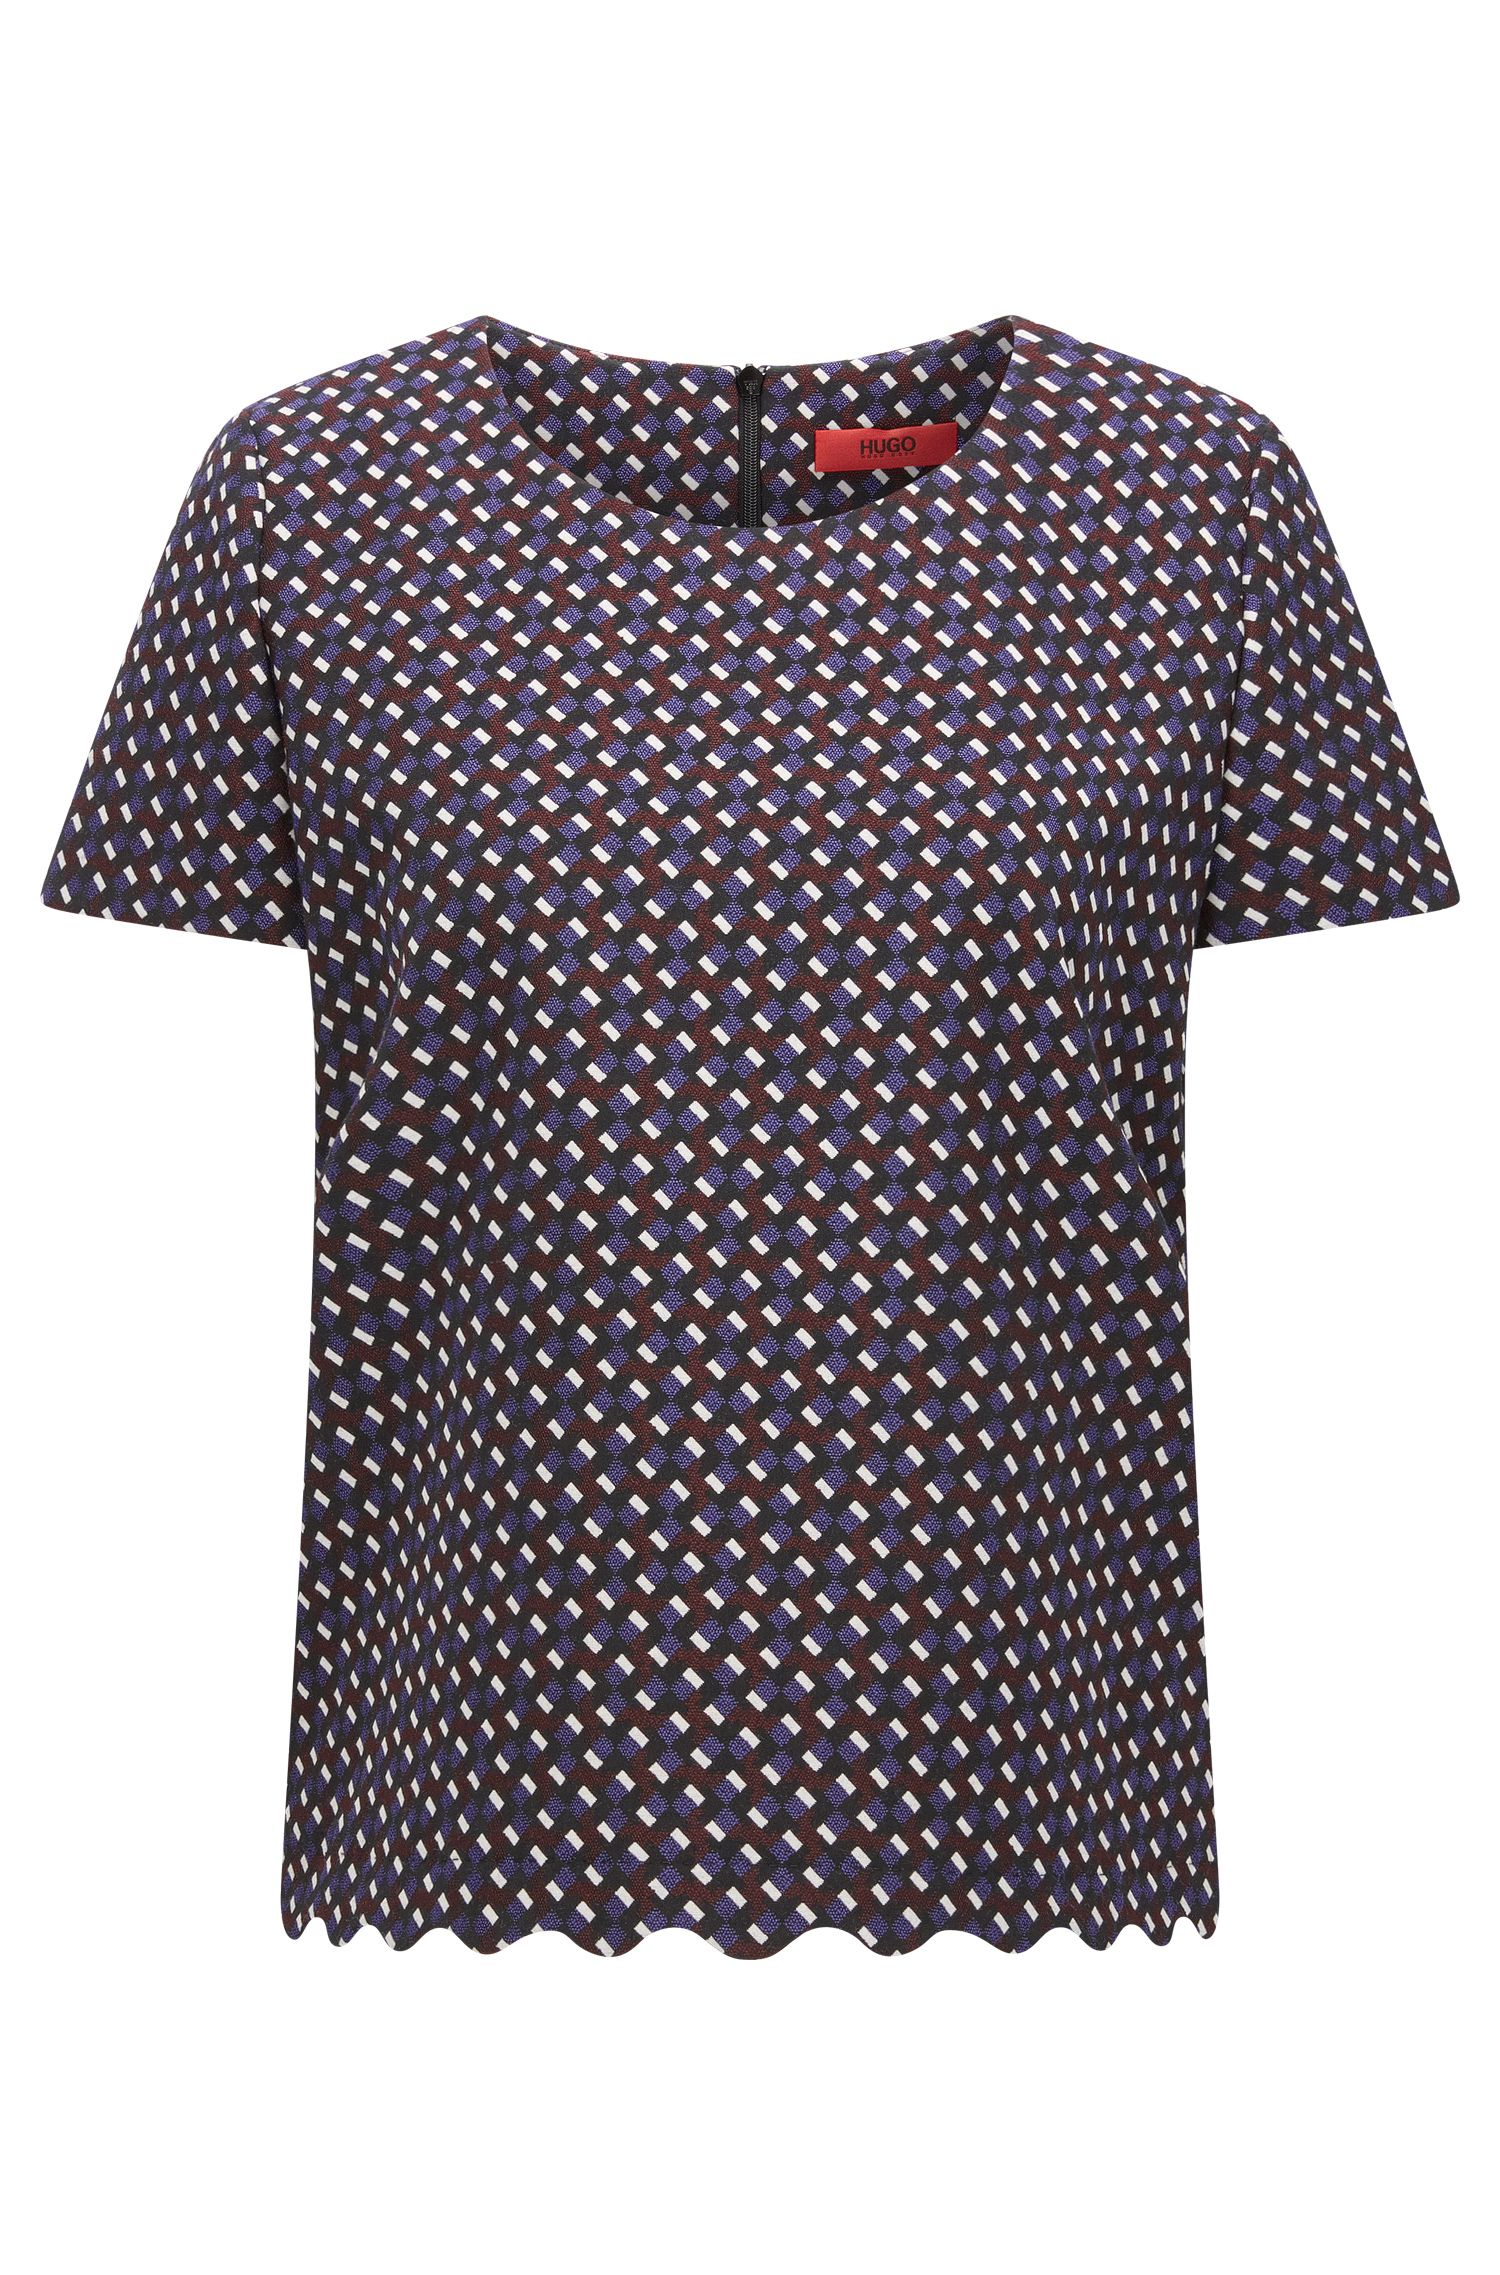 Short-sleeved top in graphic jacquard